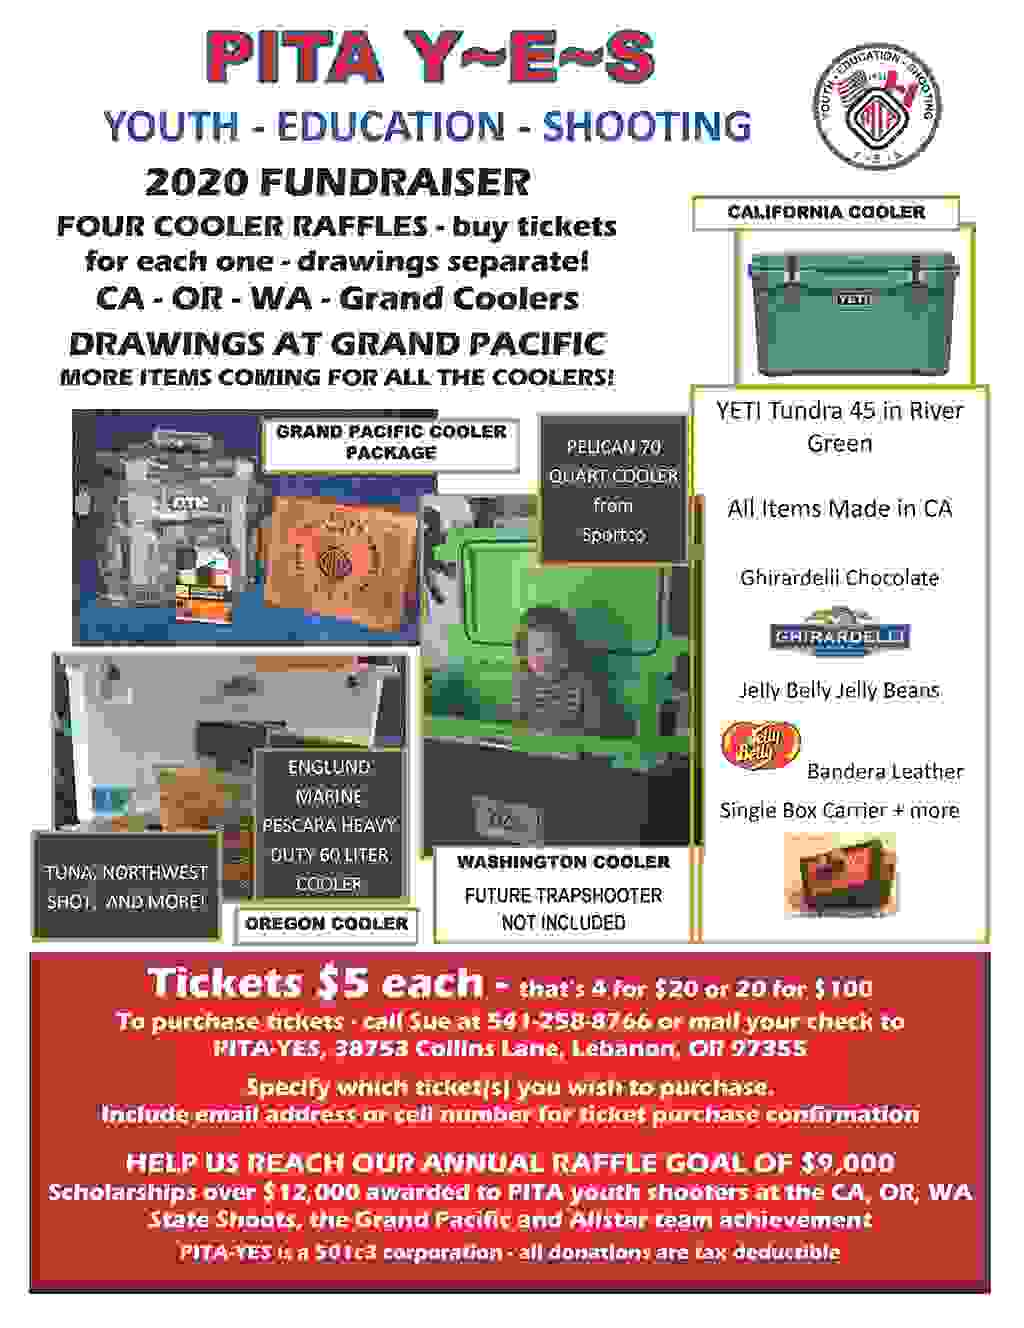 2020 FUNDRAISER CA - OR - WA - Grand Coolers DRAWINGS AT GRAND PACIFIC